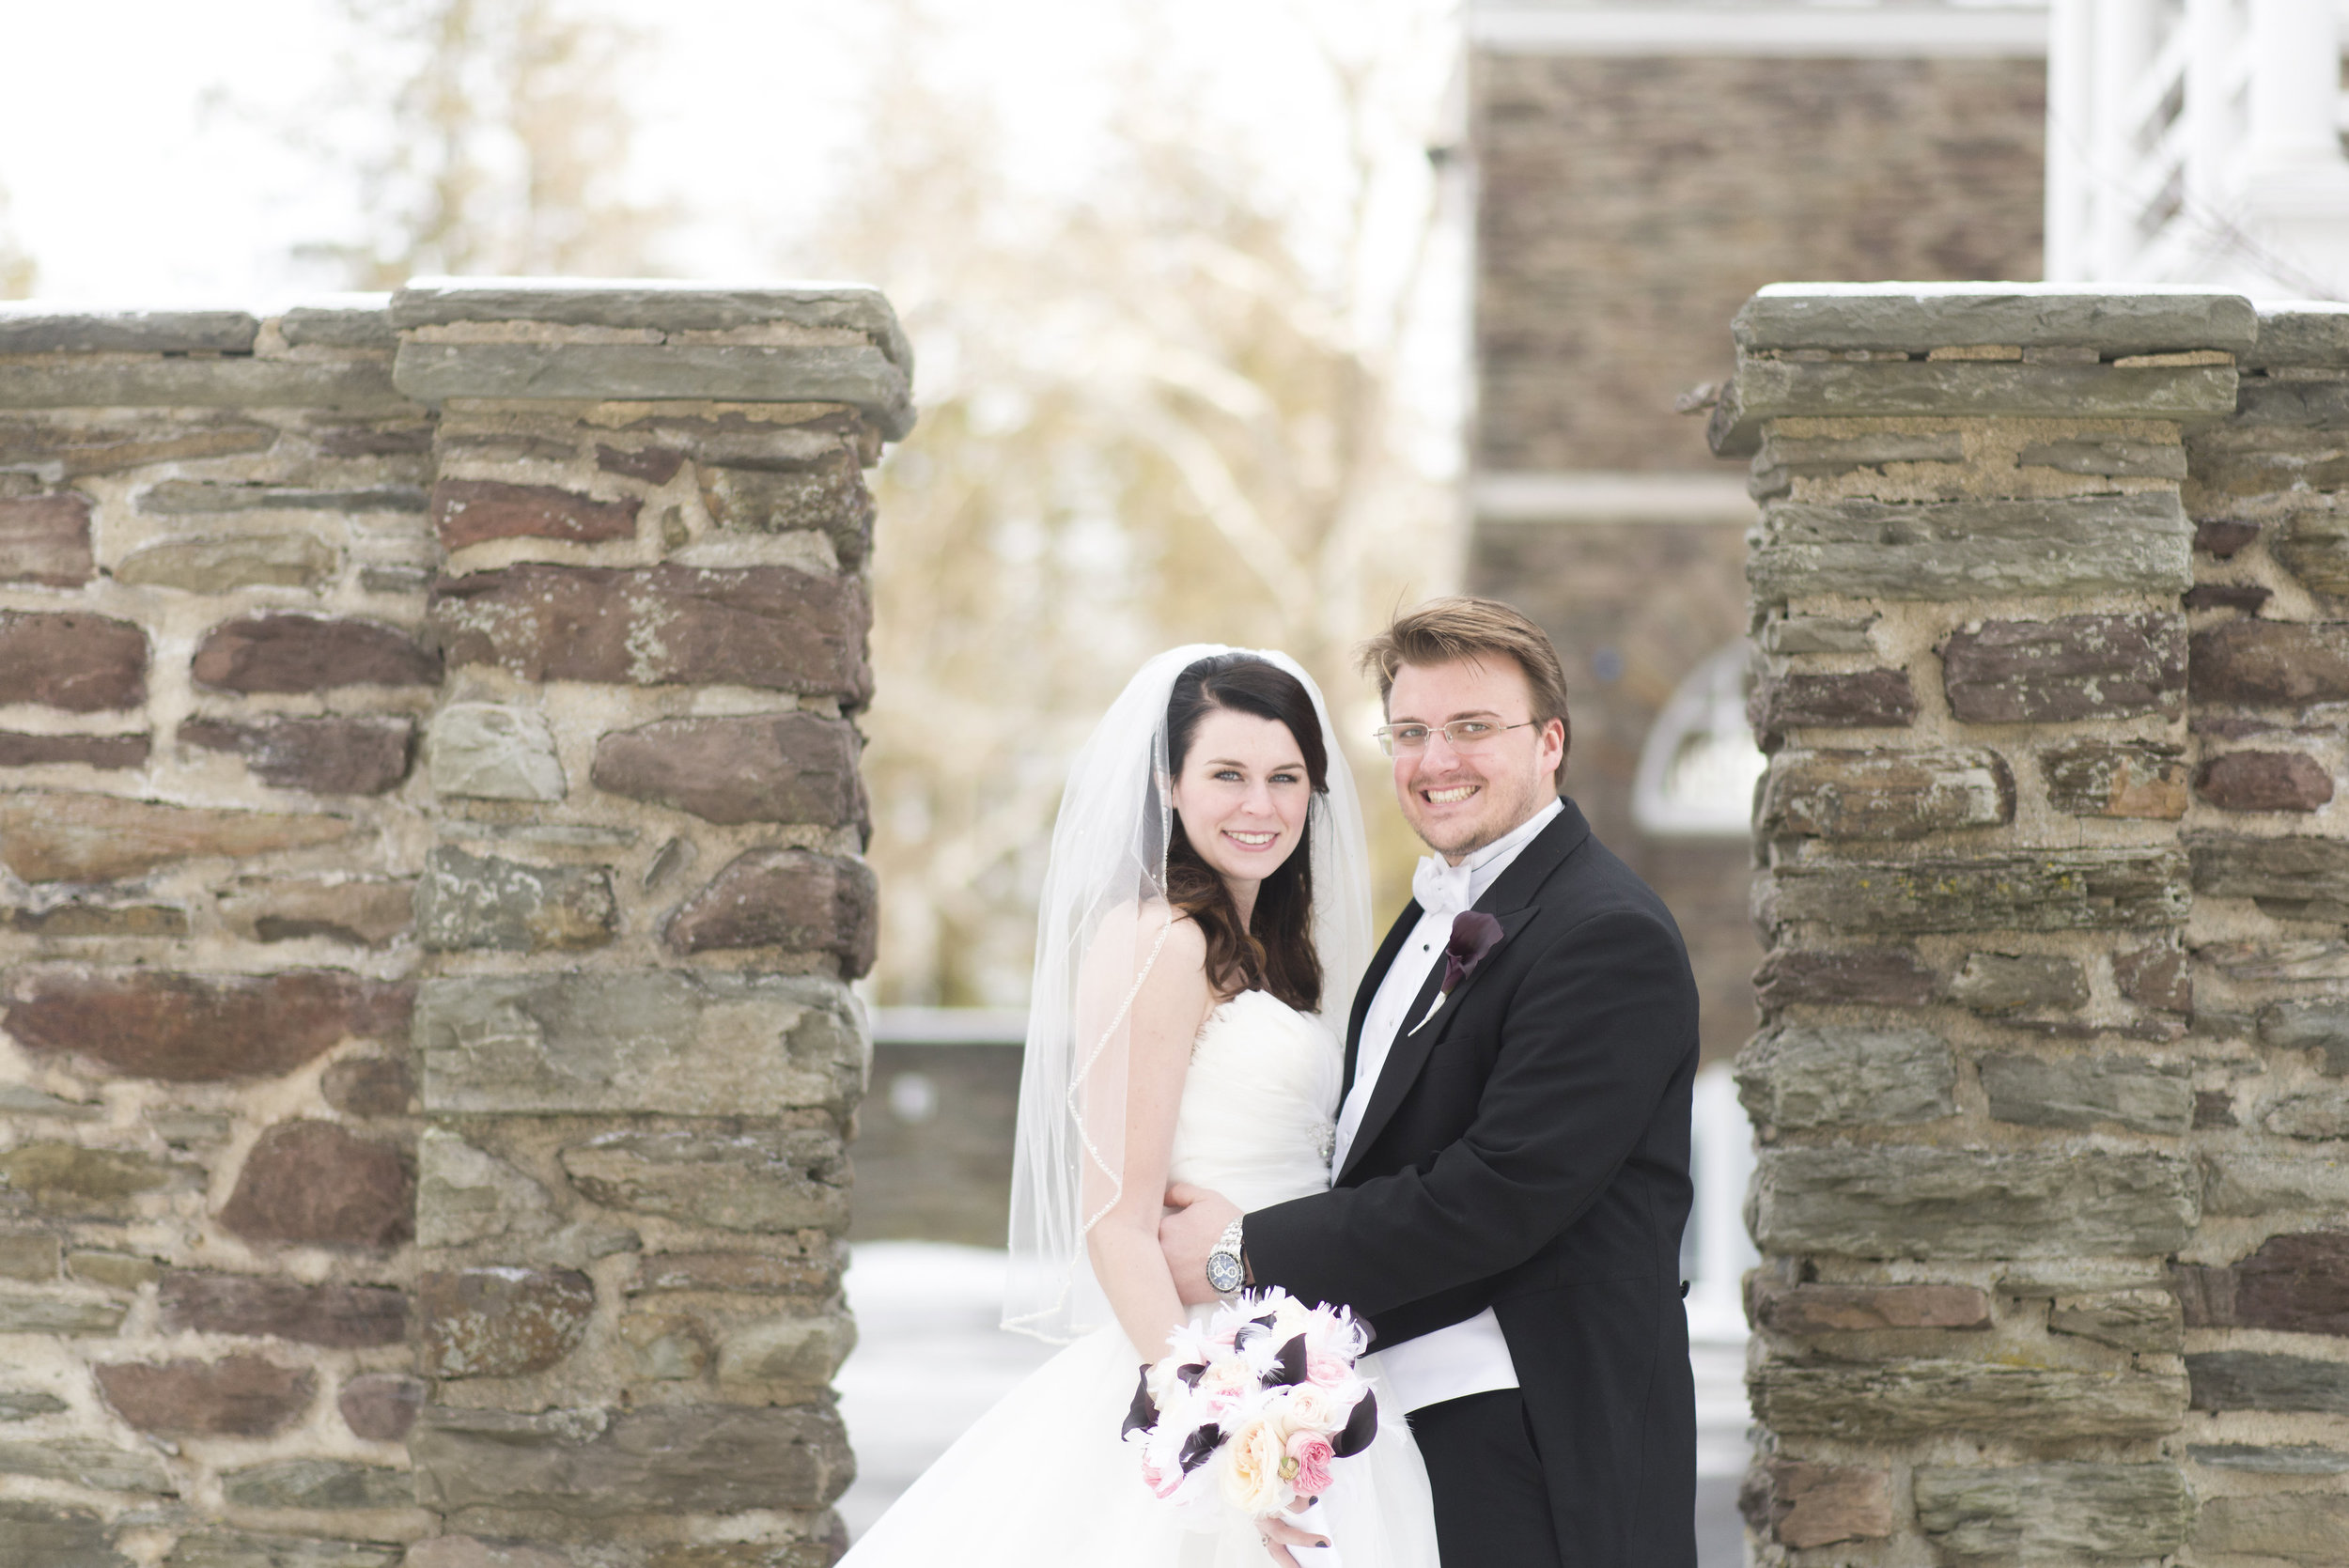 It's been so hot, I wanted to show off the Seelye wedding from this past January!